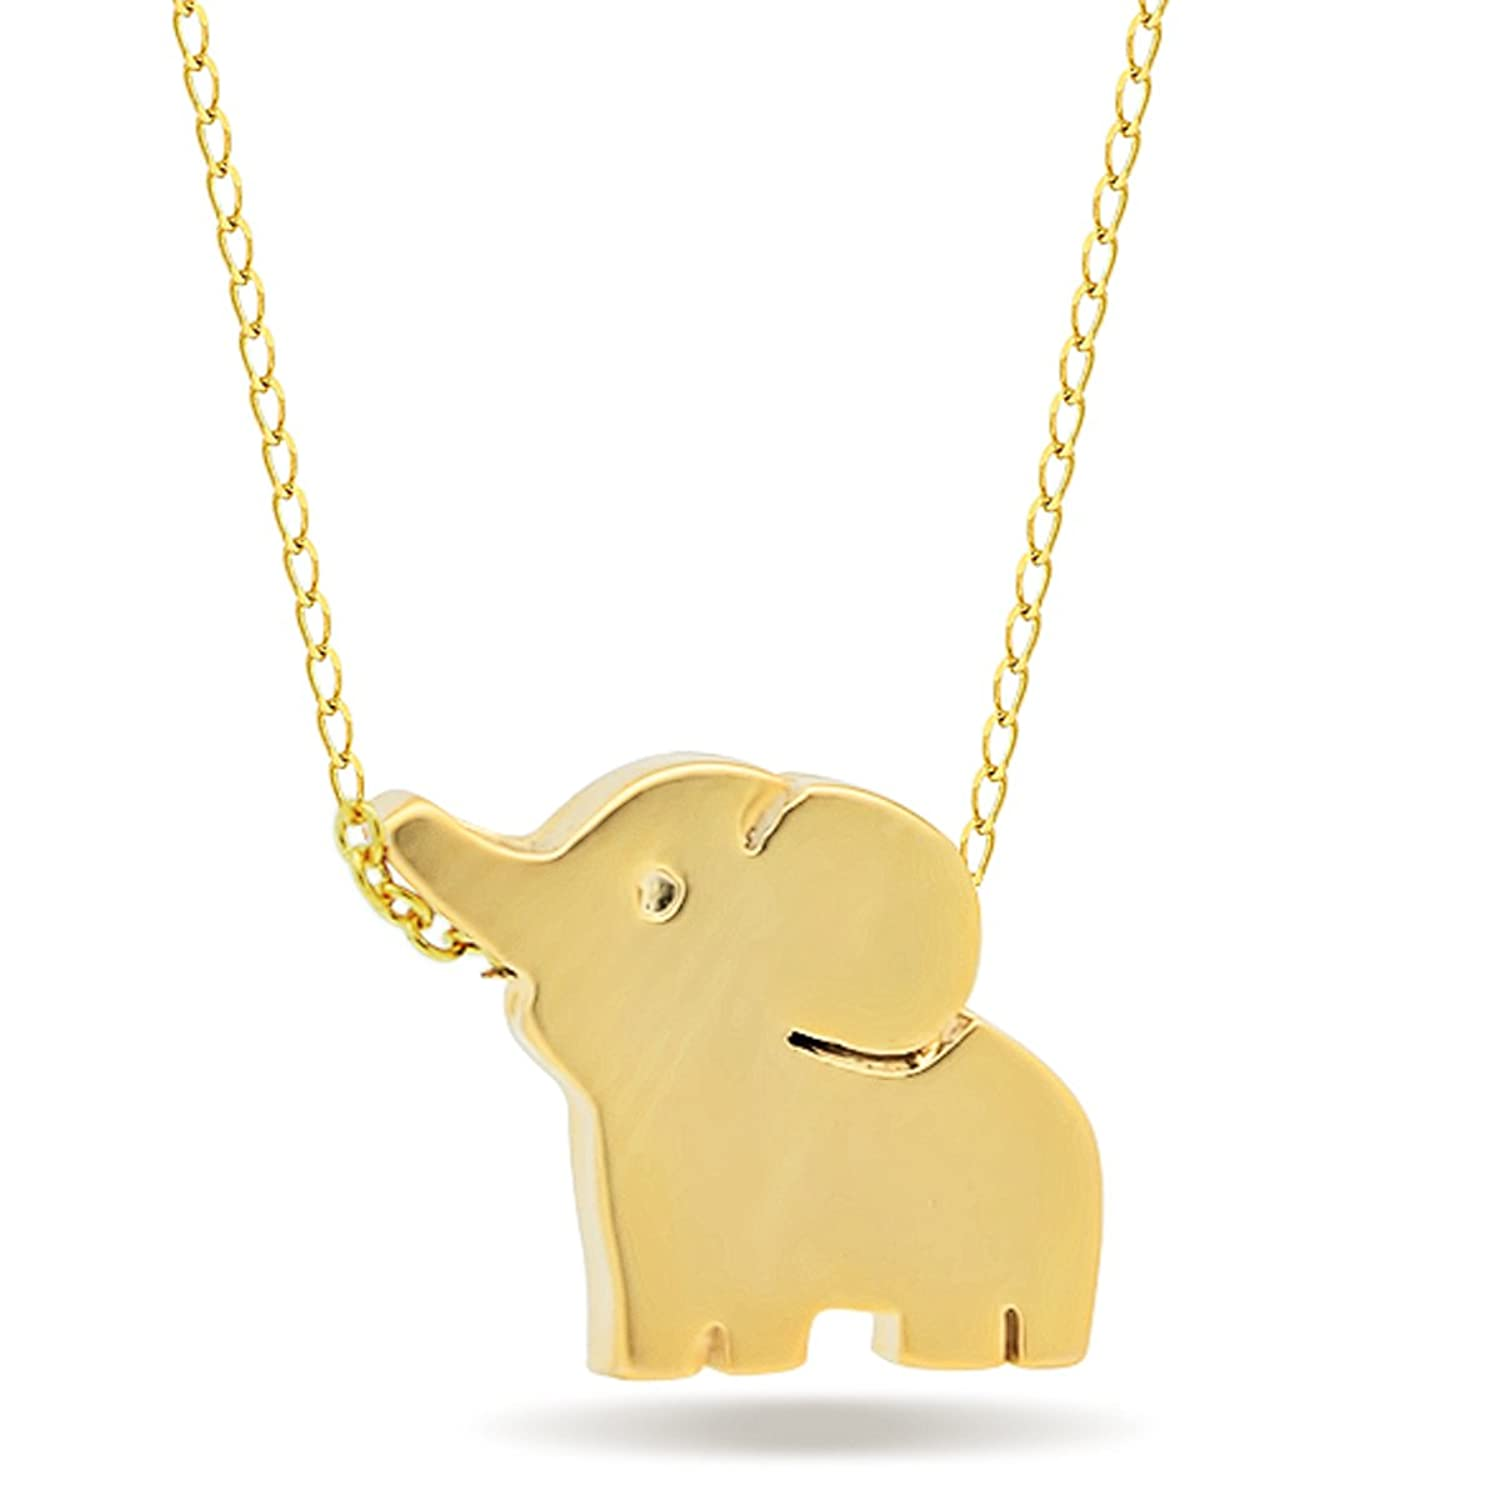 dogeared reminders lucky chain dp charm sterling elephant com gold amazon extender us silver dipped necklace jewelry